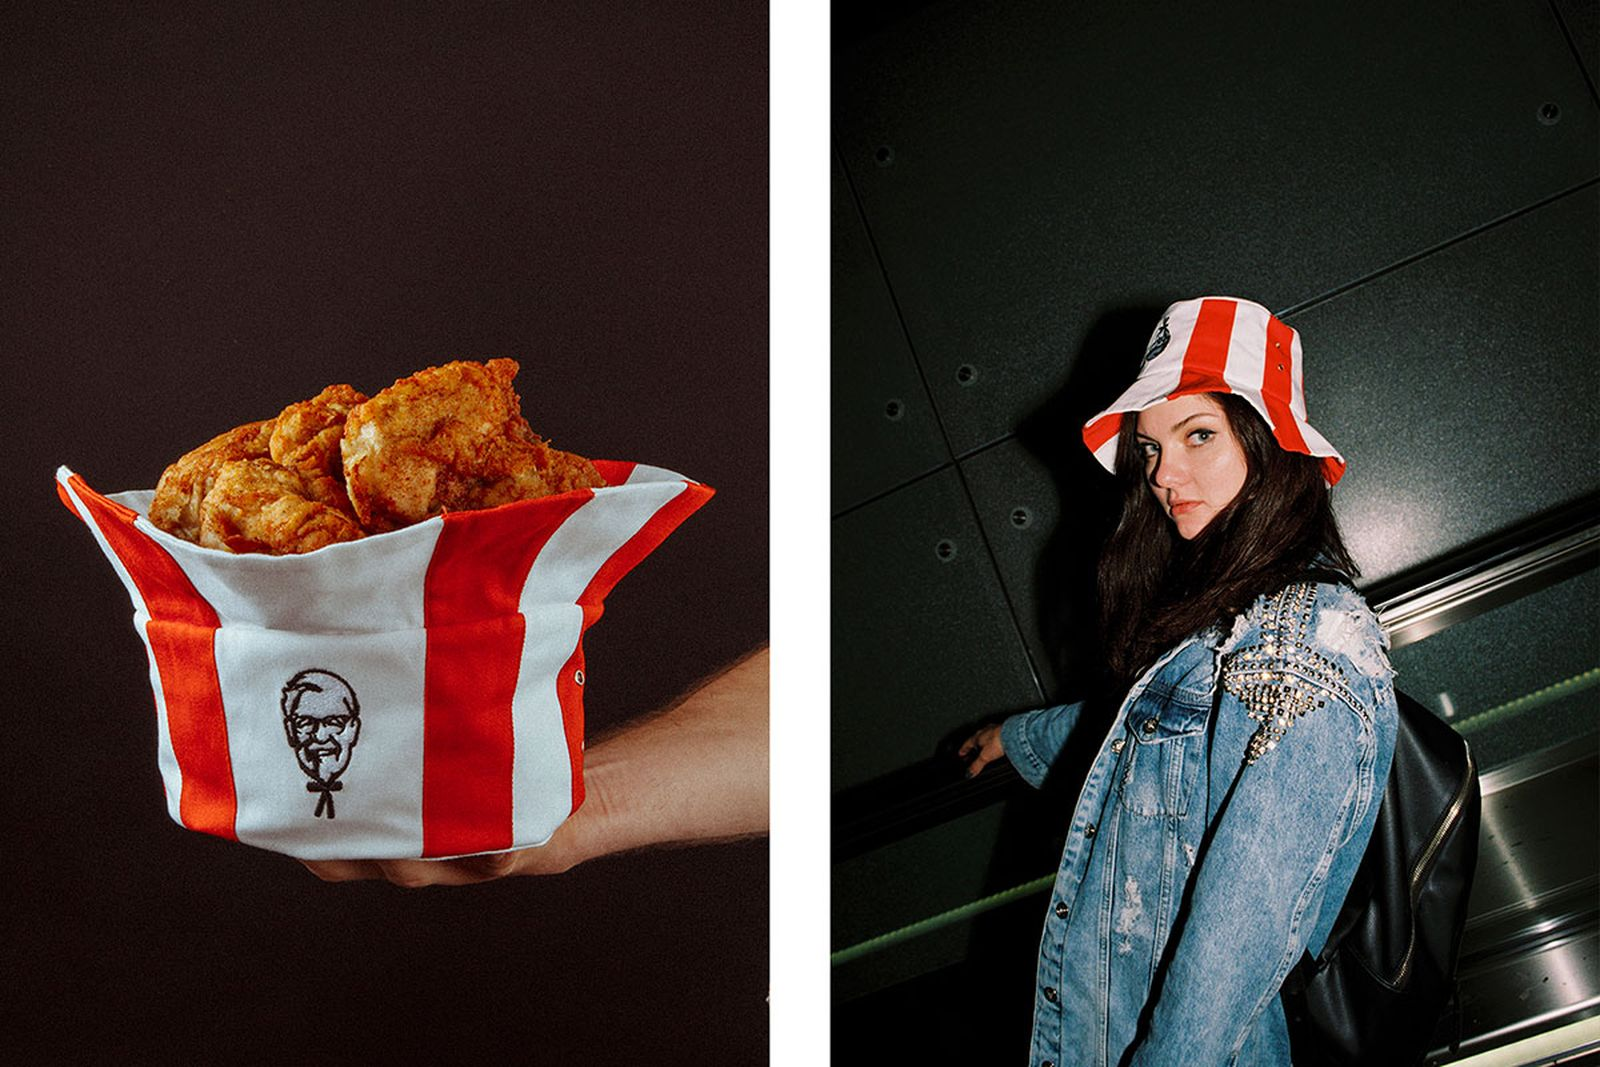 kfc russia launches limited edition bucket hat Mam Cupy